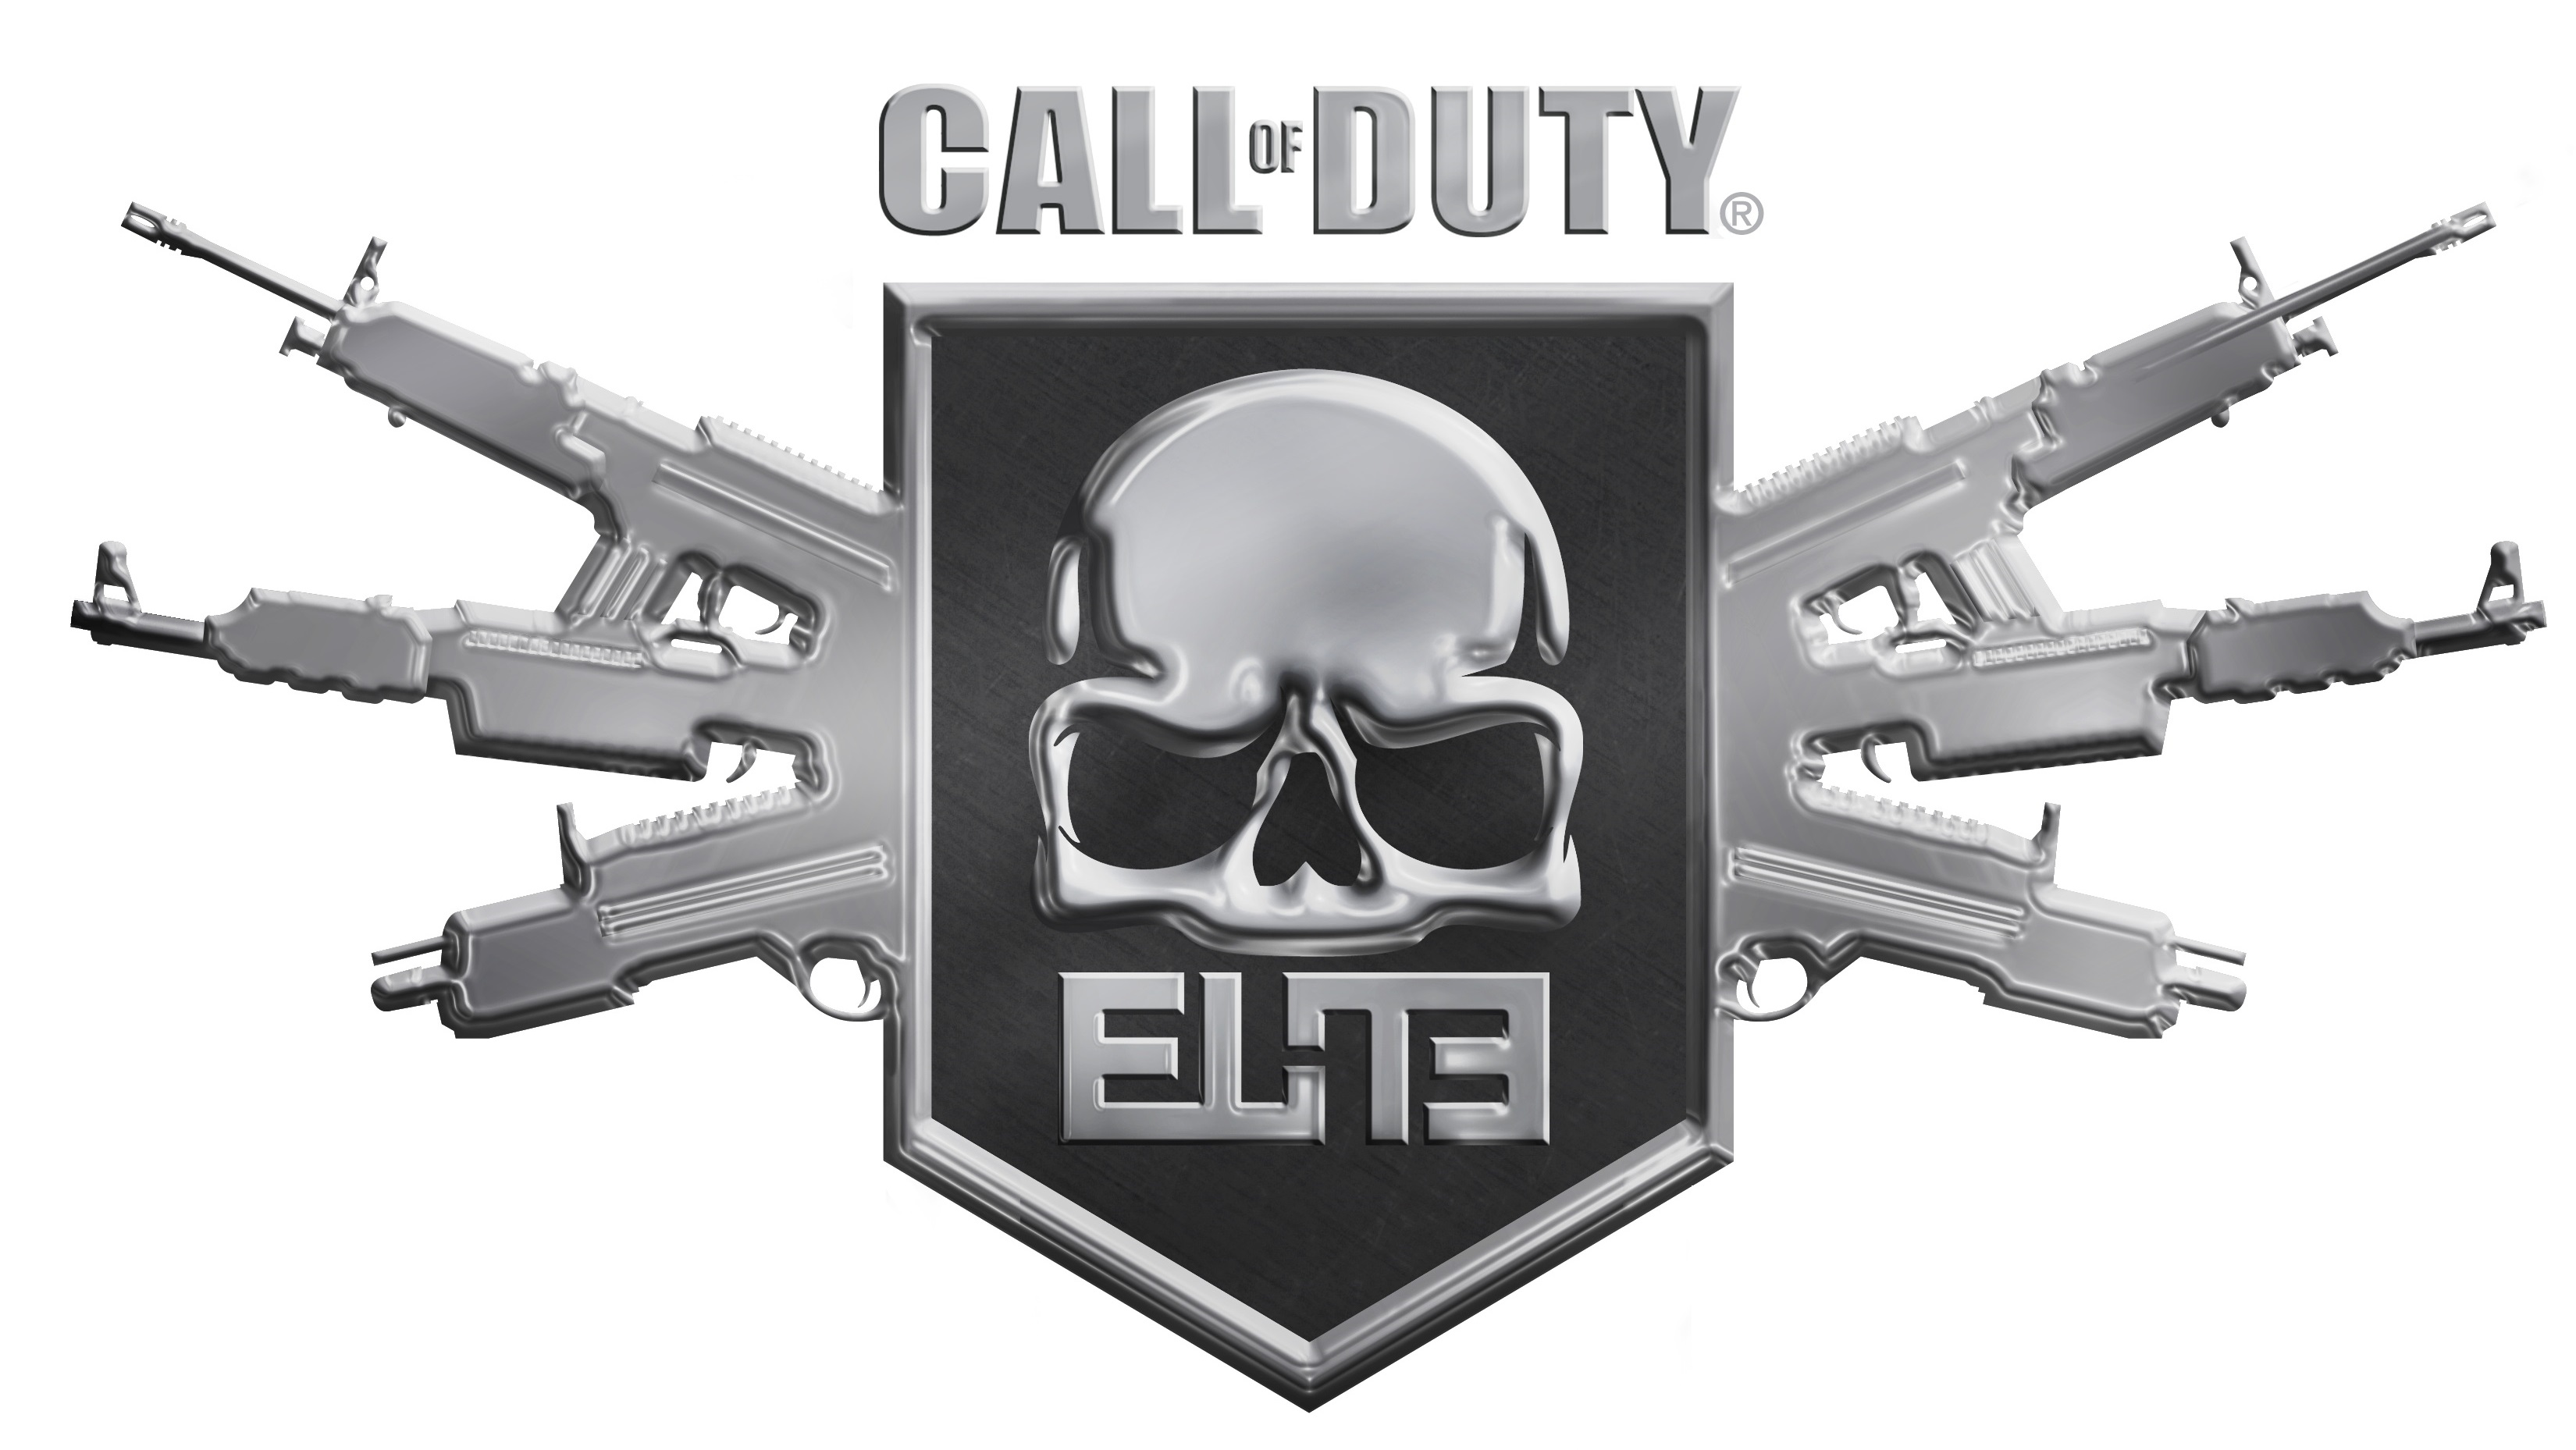 Call Of Duty Elite Anivision